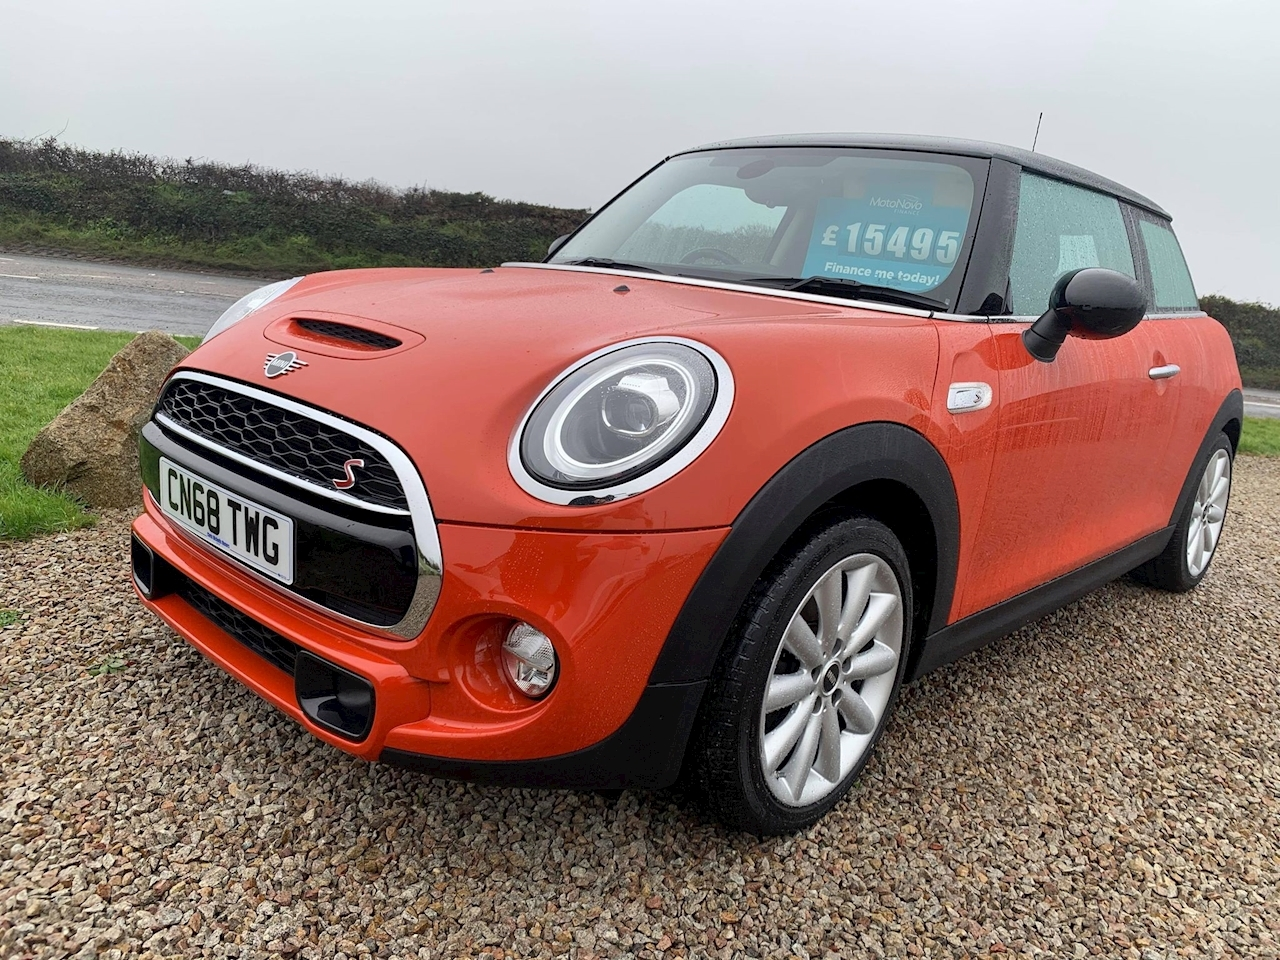 Mini Mini Cooper S Hatchback 2.0 Manual Petrol